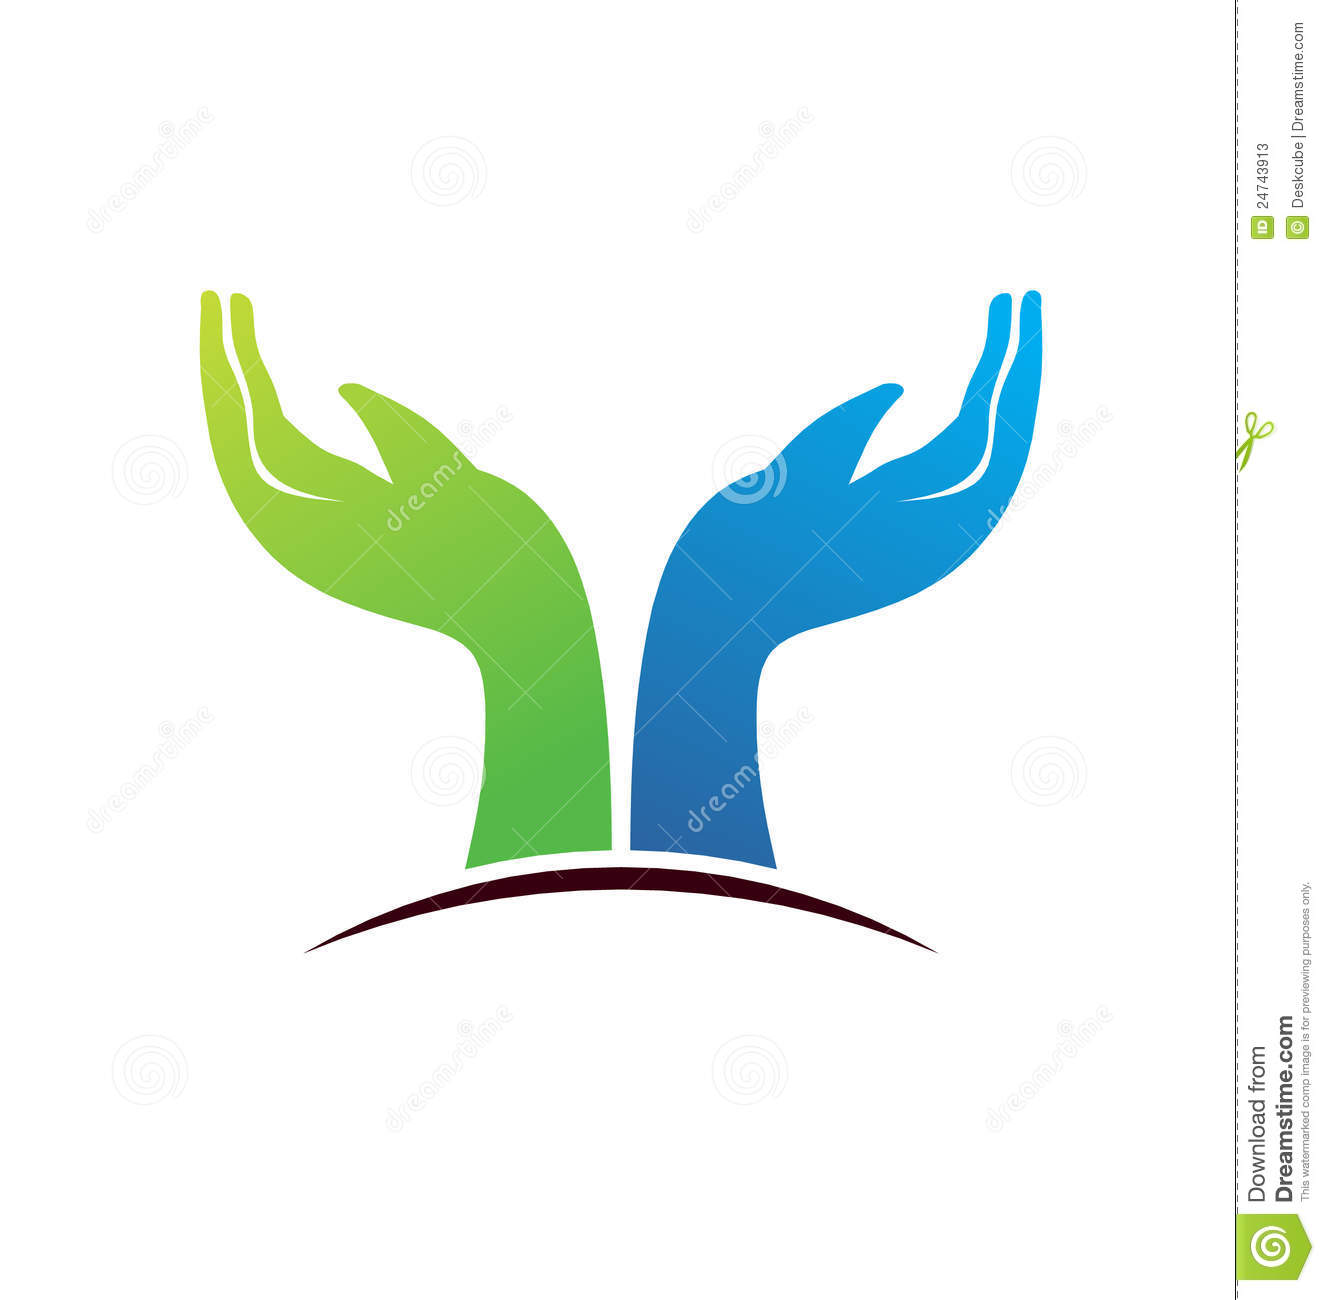 Safety Logos Pictures besides Intentional Sector Collaboration likewise Stock Photos Hope Hands Image24743913 moreover Cooperative friend friendship happy high five success teammate icon likewise Technology Integration. on teamwork logo